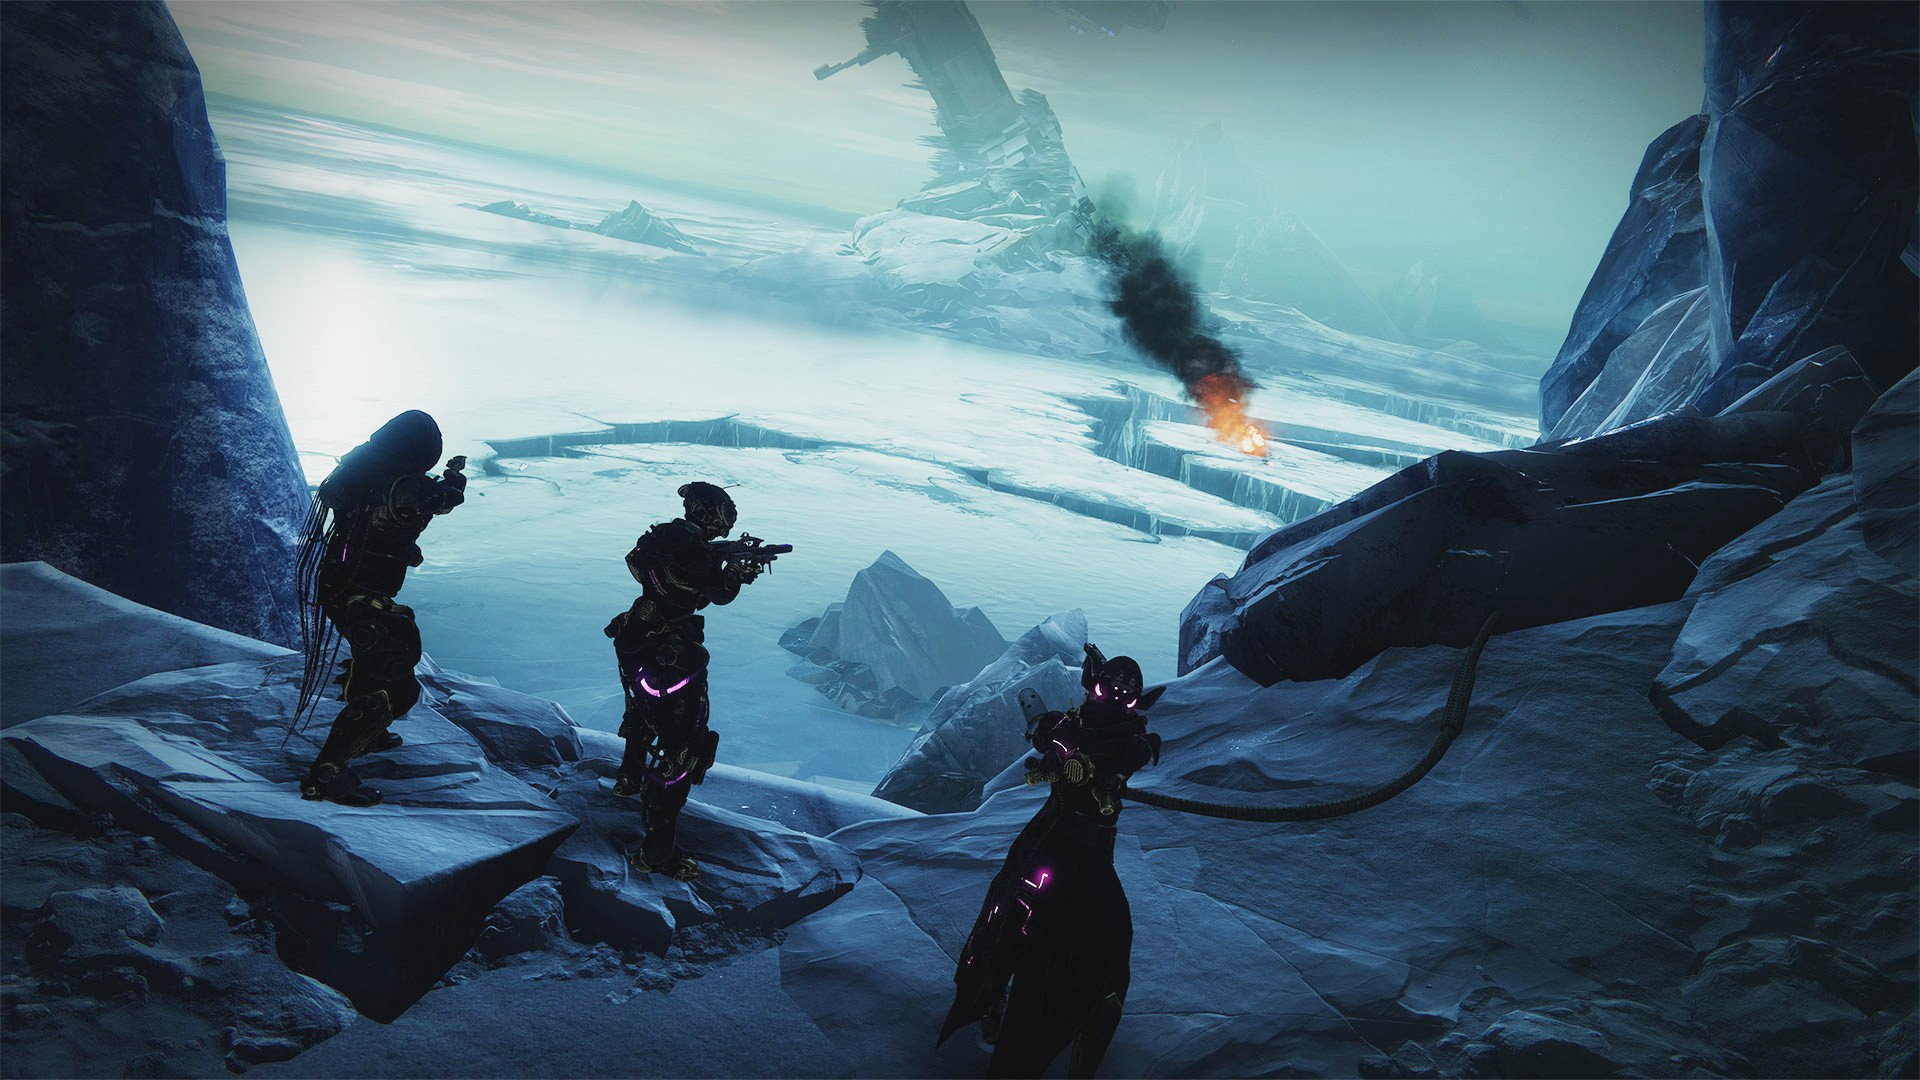 Destiny 2's Witch Queen expansion will be revealed next month